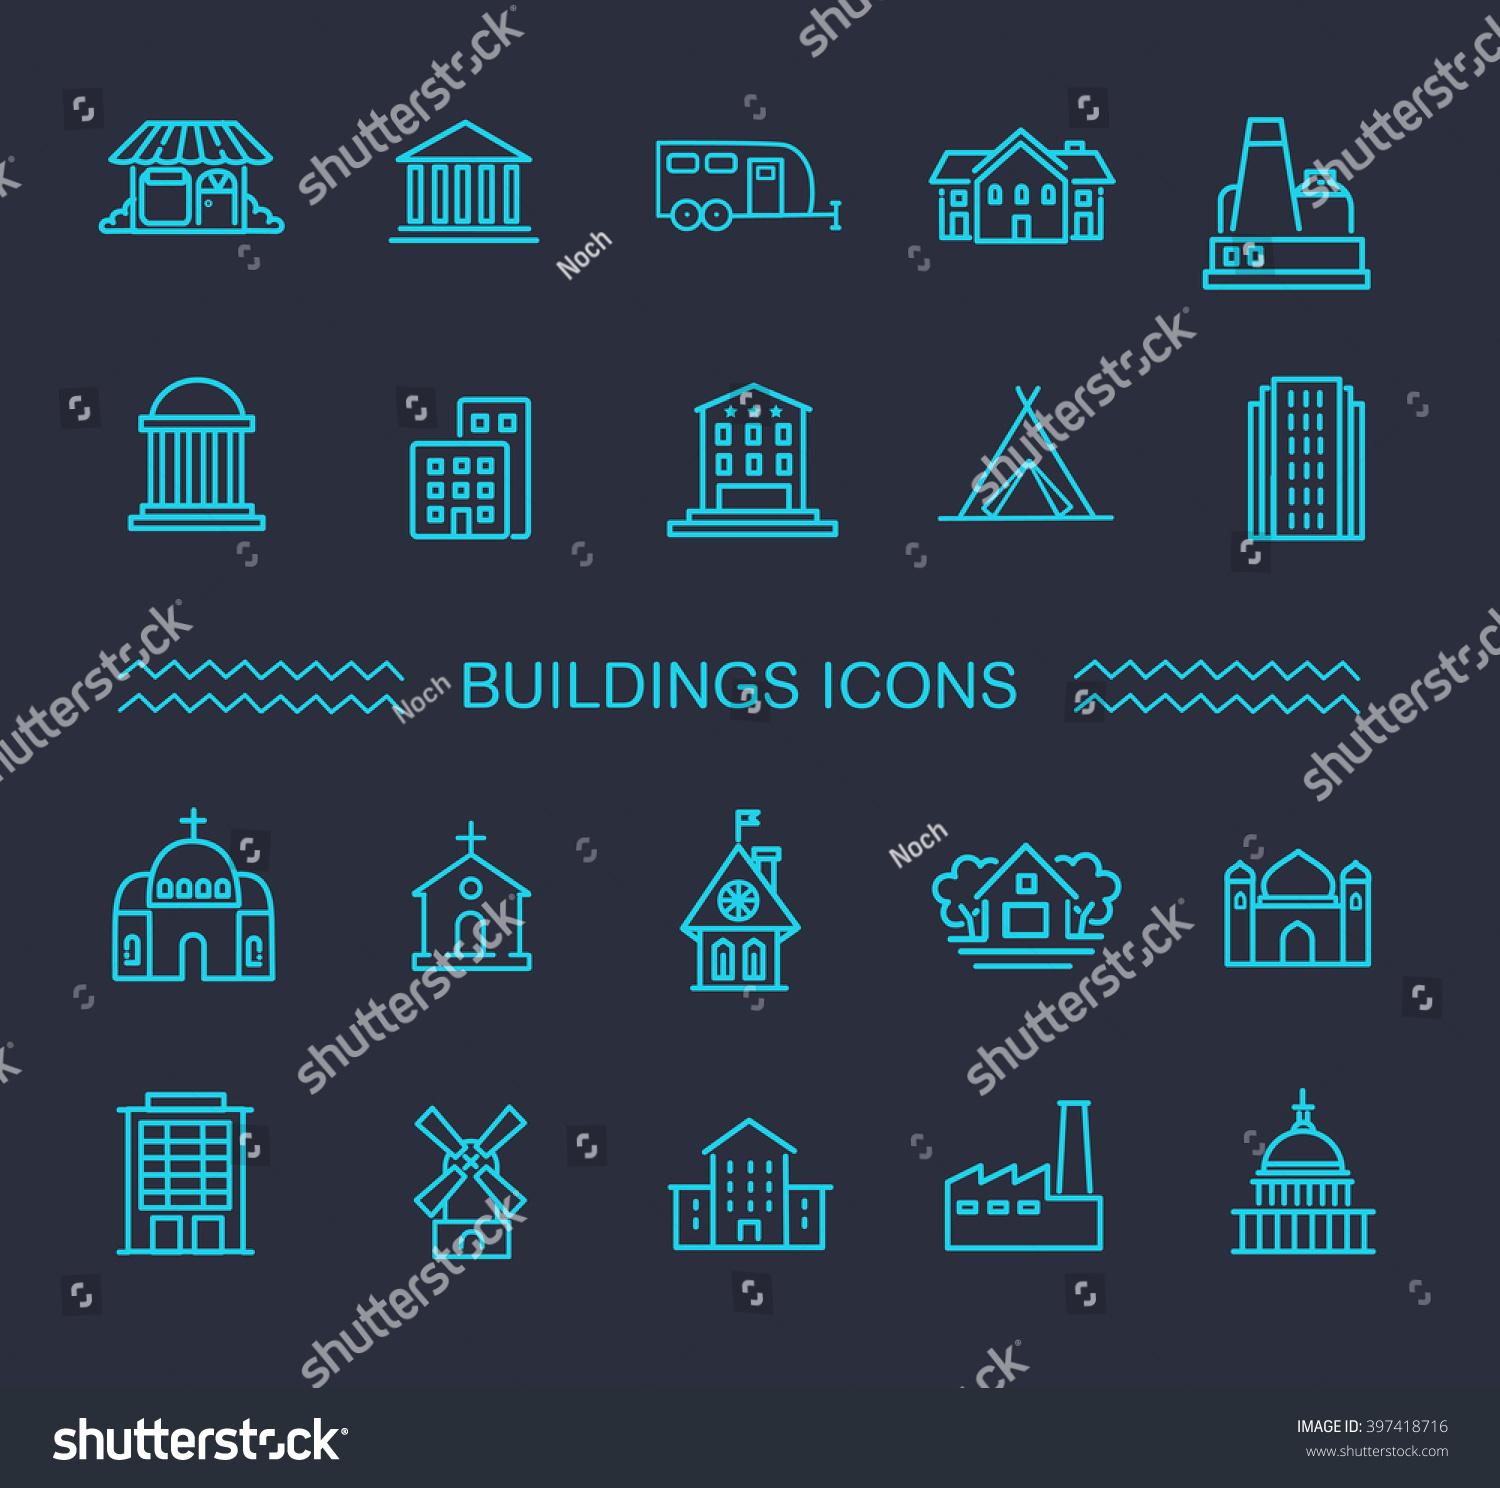 Building Icons Set Government Stock Vector (Royalty Free) 397418716